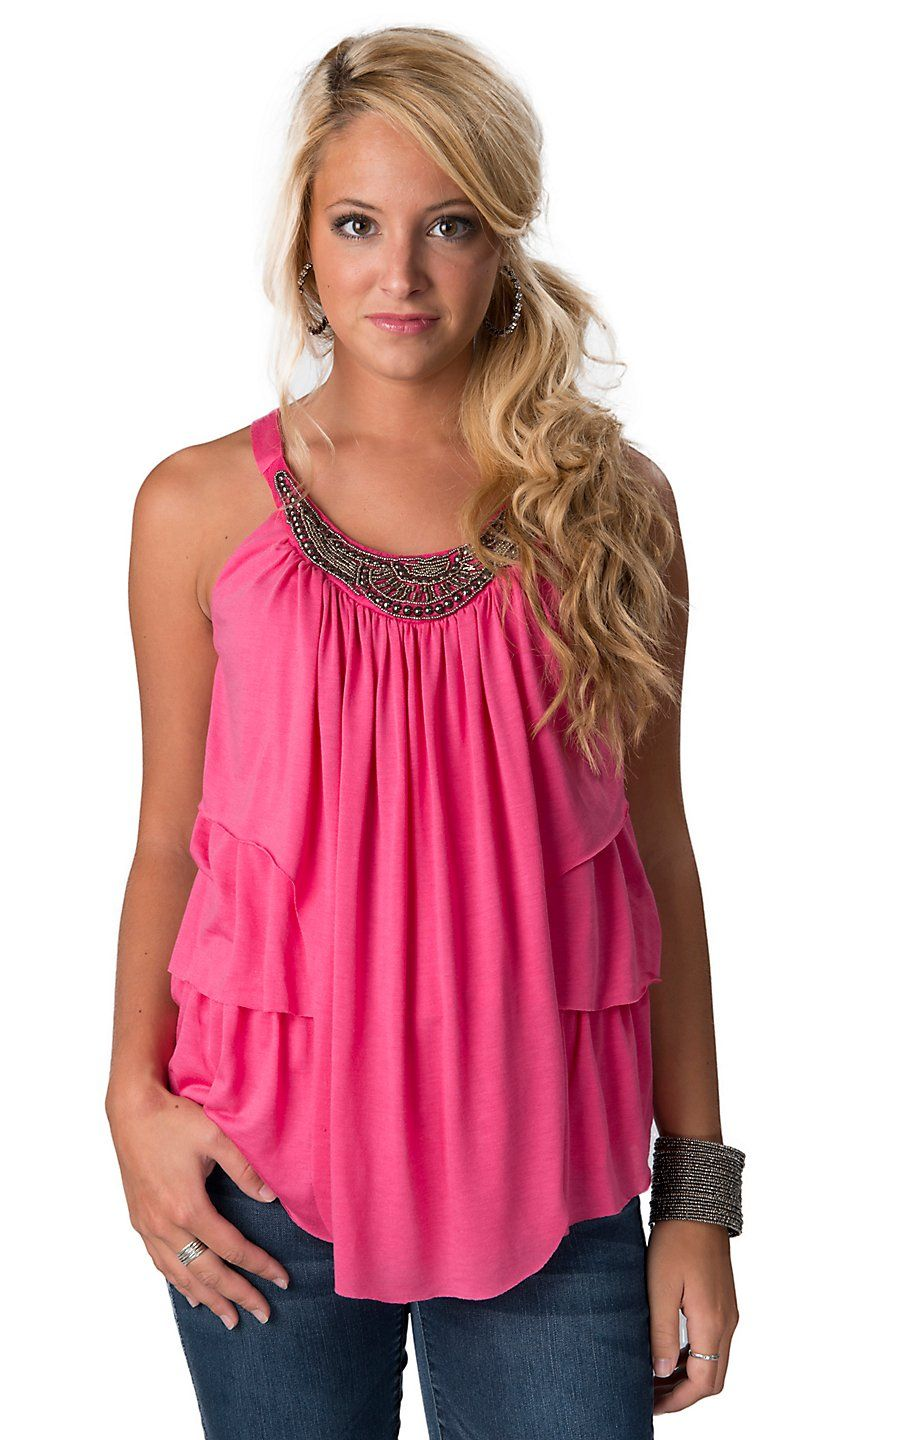 Rock 47™ by Wrangler® Women's Pink with Silver Beaded Neckline and Ruffles Sleeveless Fashion Top | Cavender's Boot City $34.00